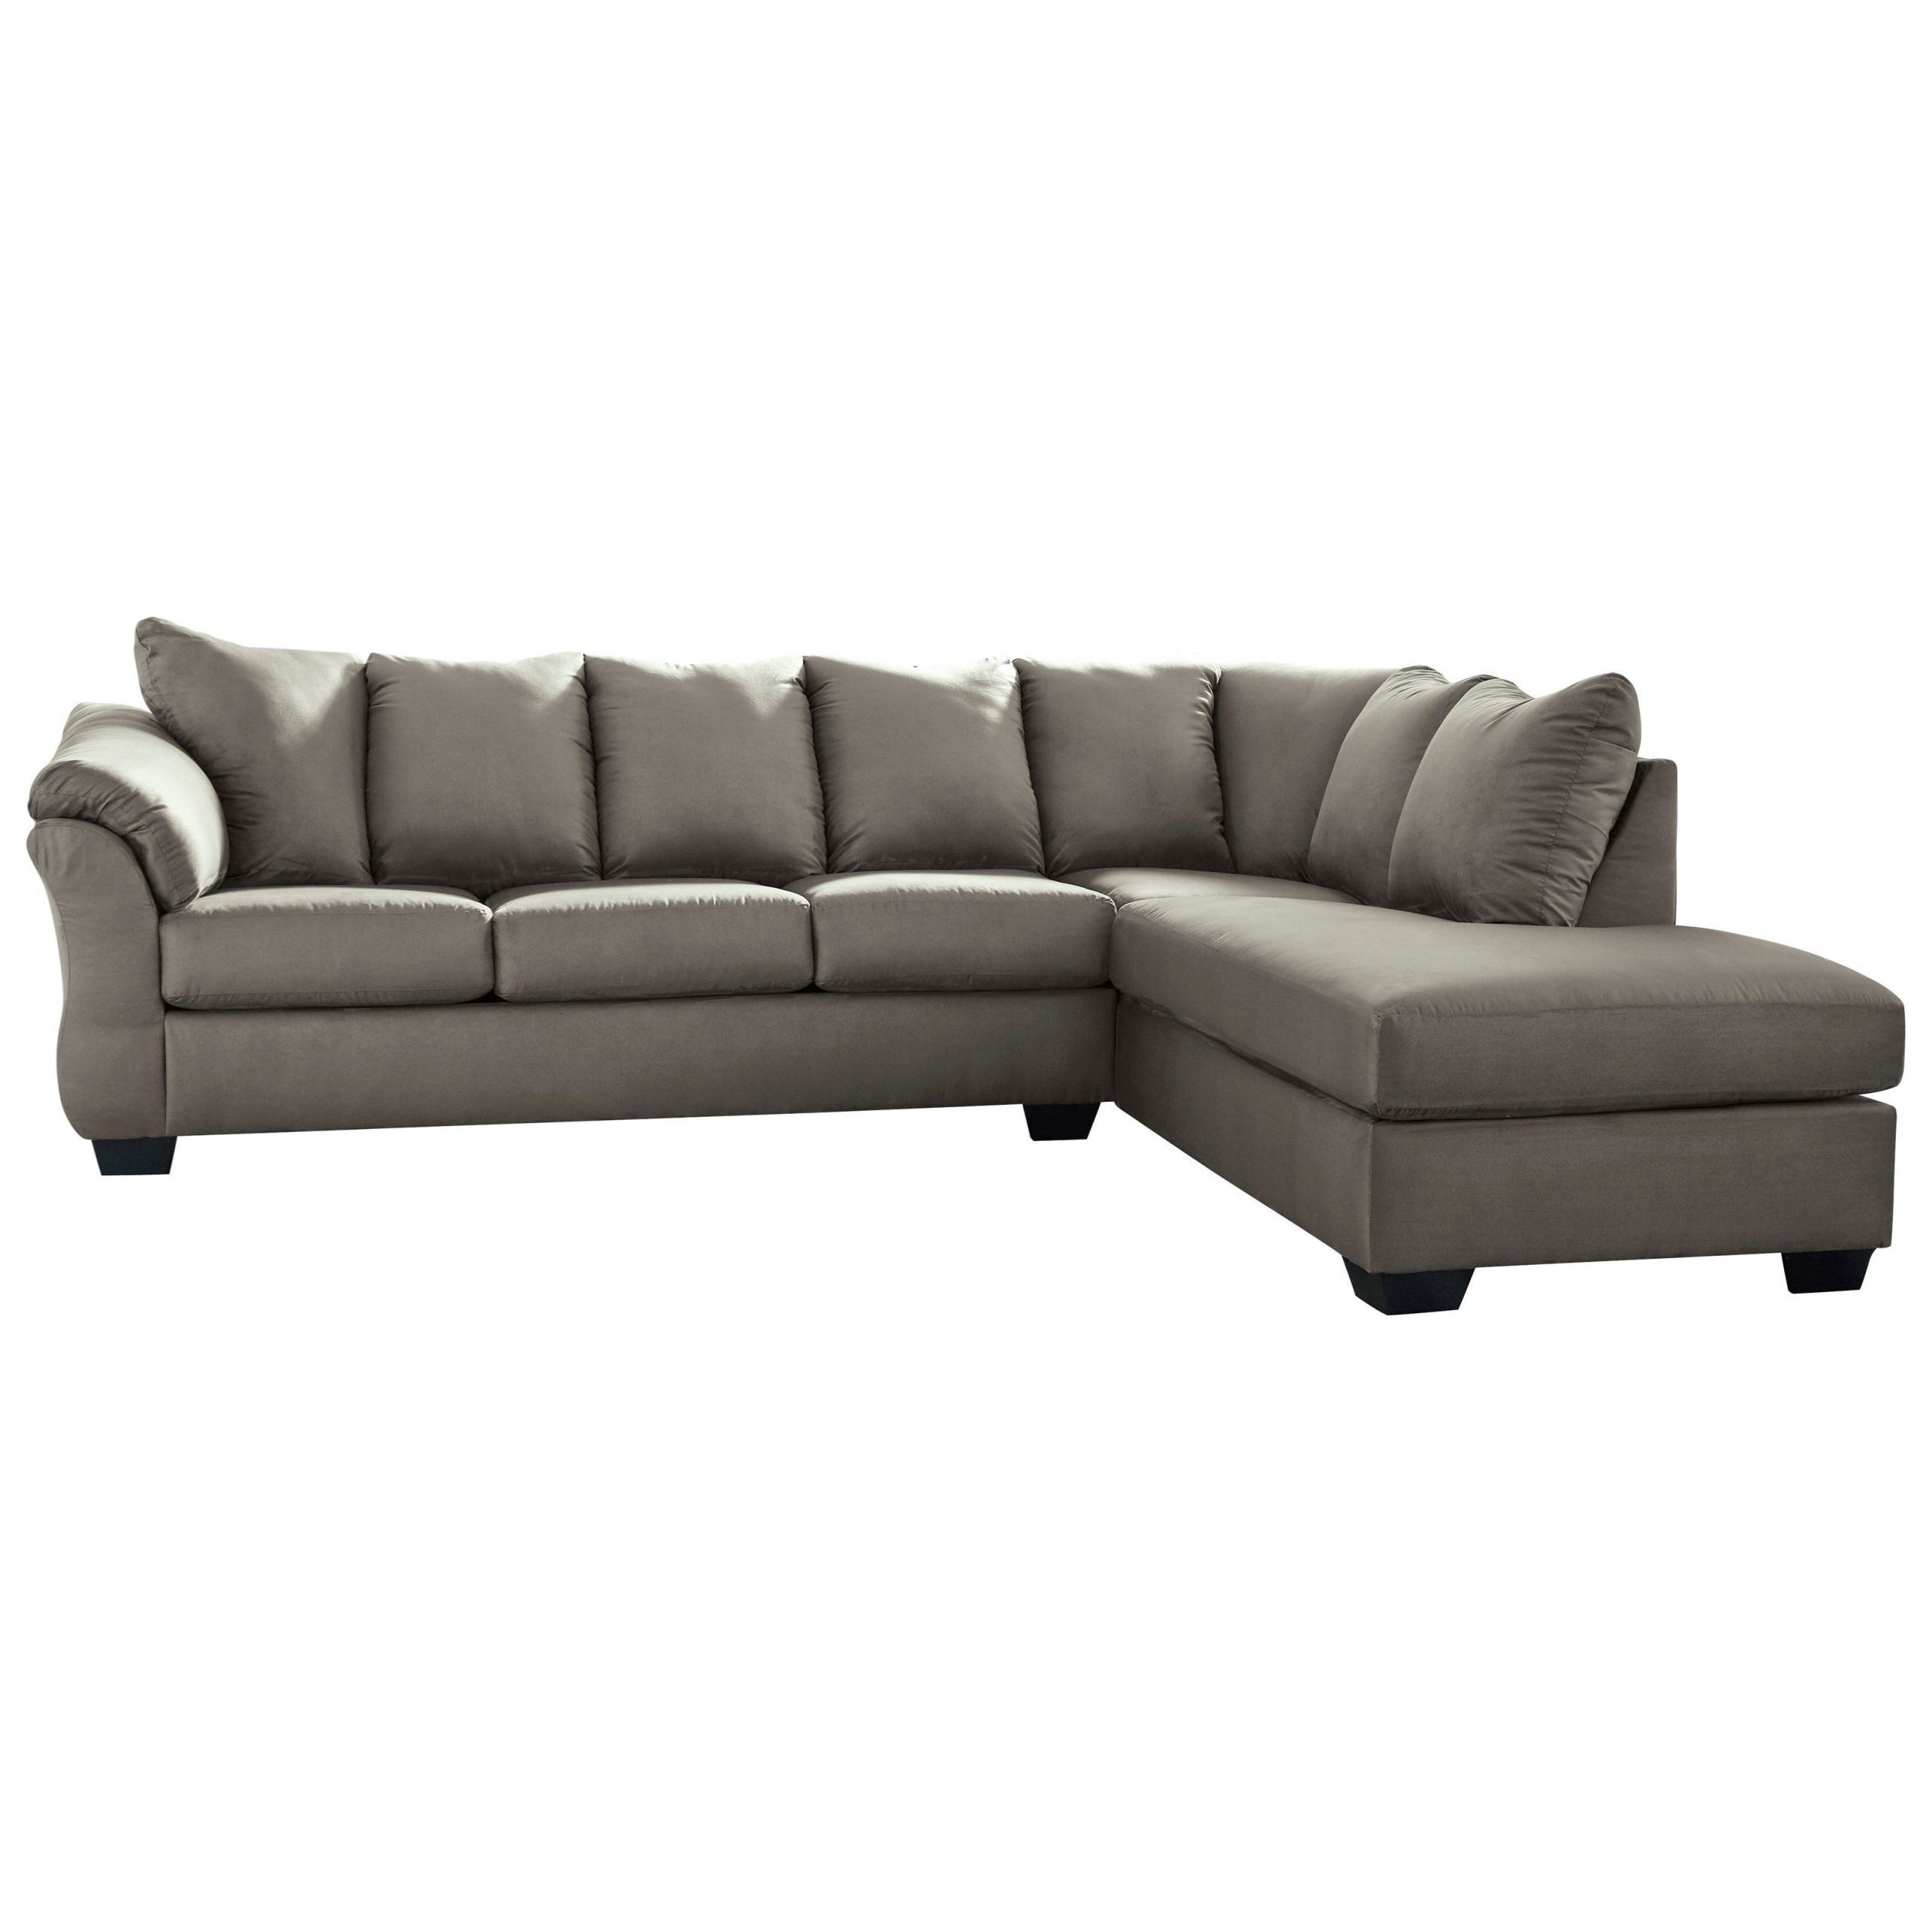 Signature Designashley Darcy – Cobblestone Pertaining To Recent 2pc Burland Contemporary Chaise Sectional Sofas (View 18 of 20)